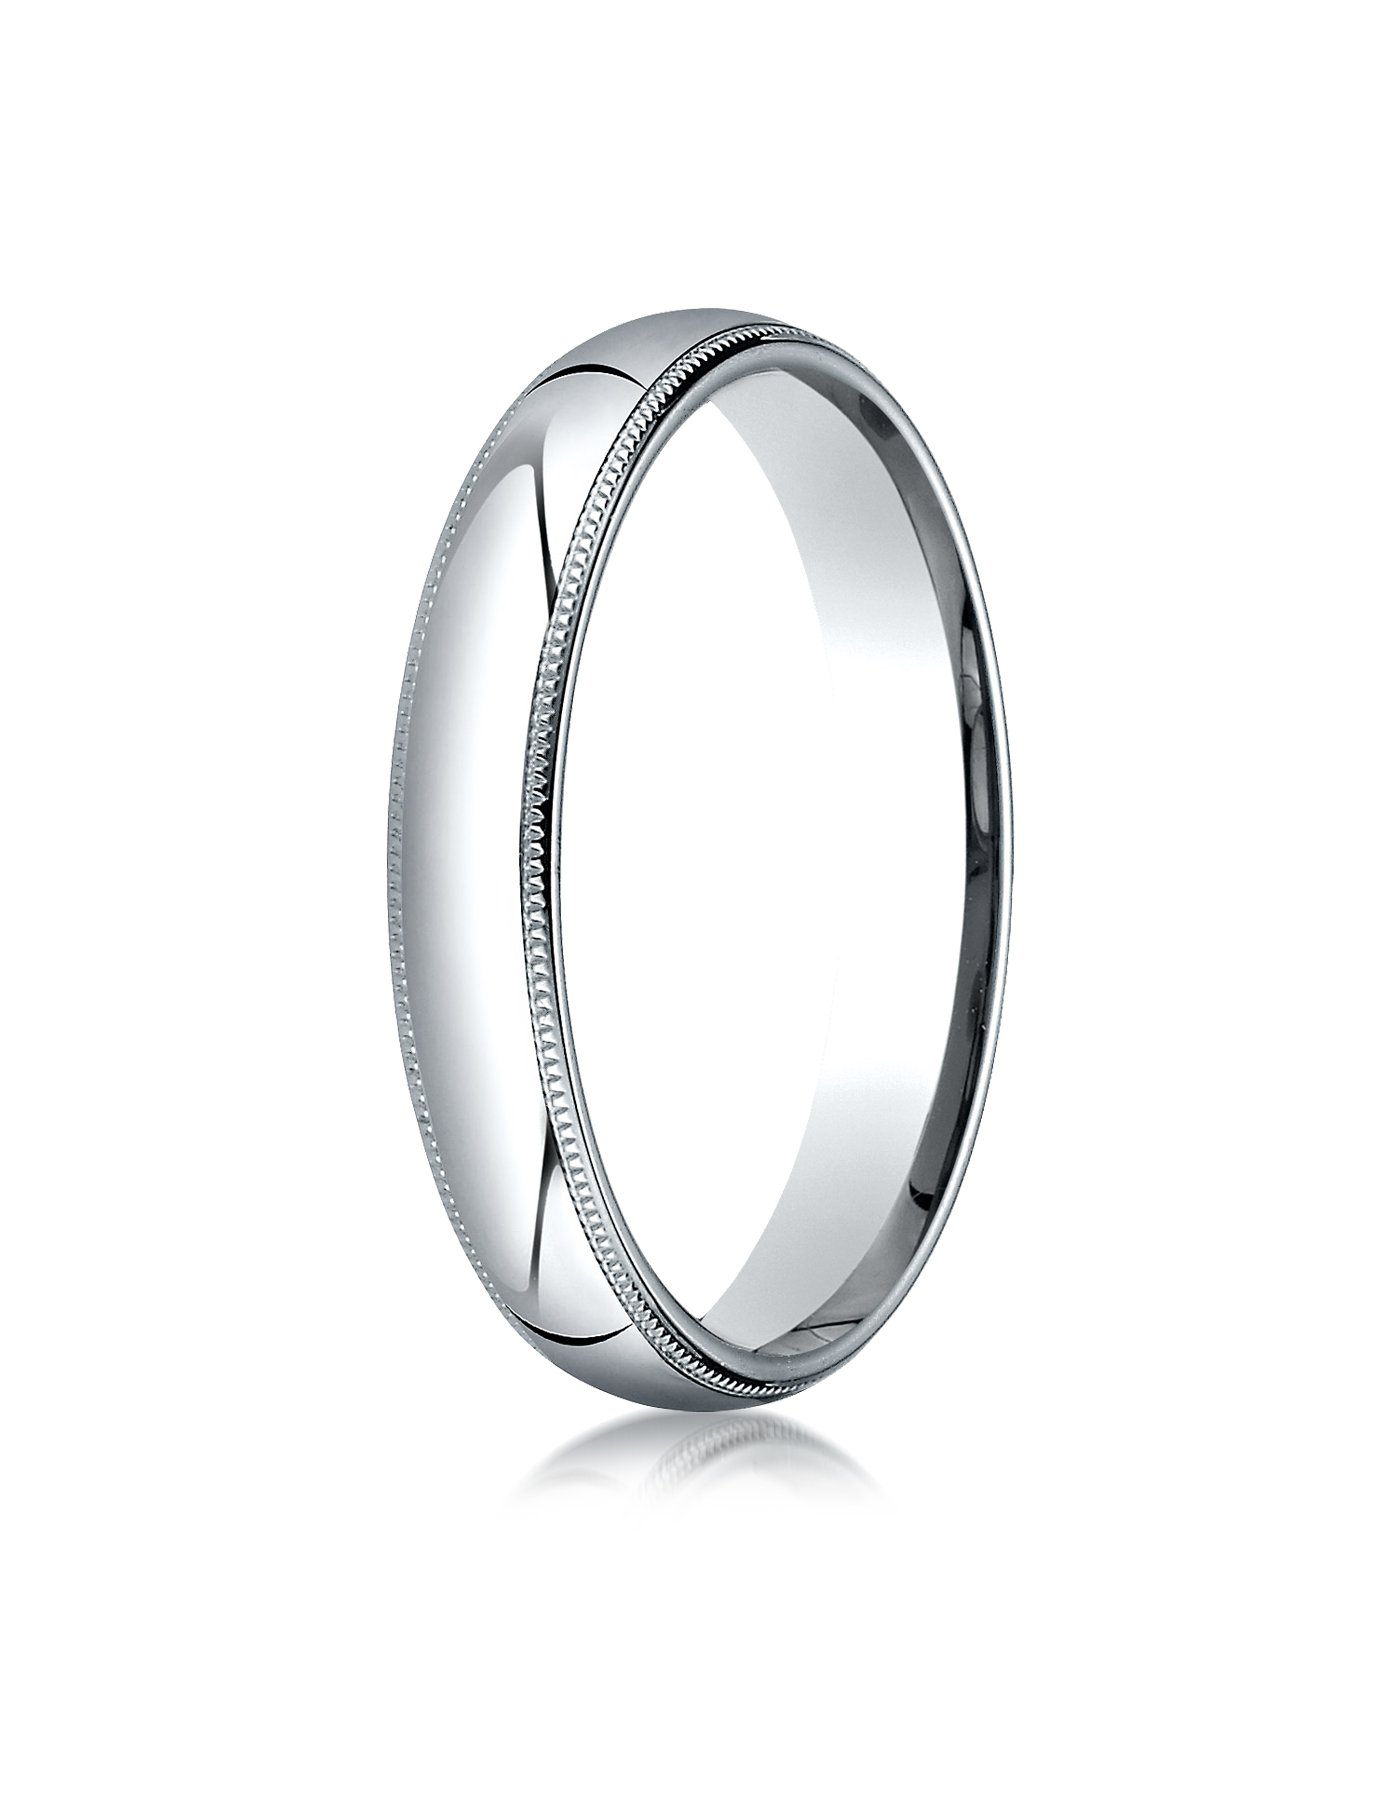 Mens Platinum, 4mm Slim Profile Comfort-Fit Ring with Milgrain (sz 8)